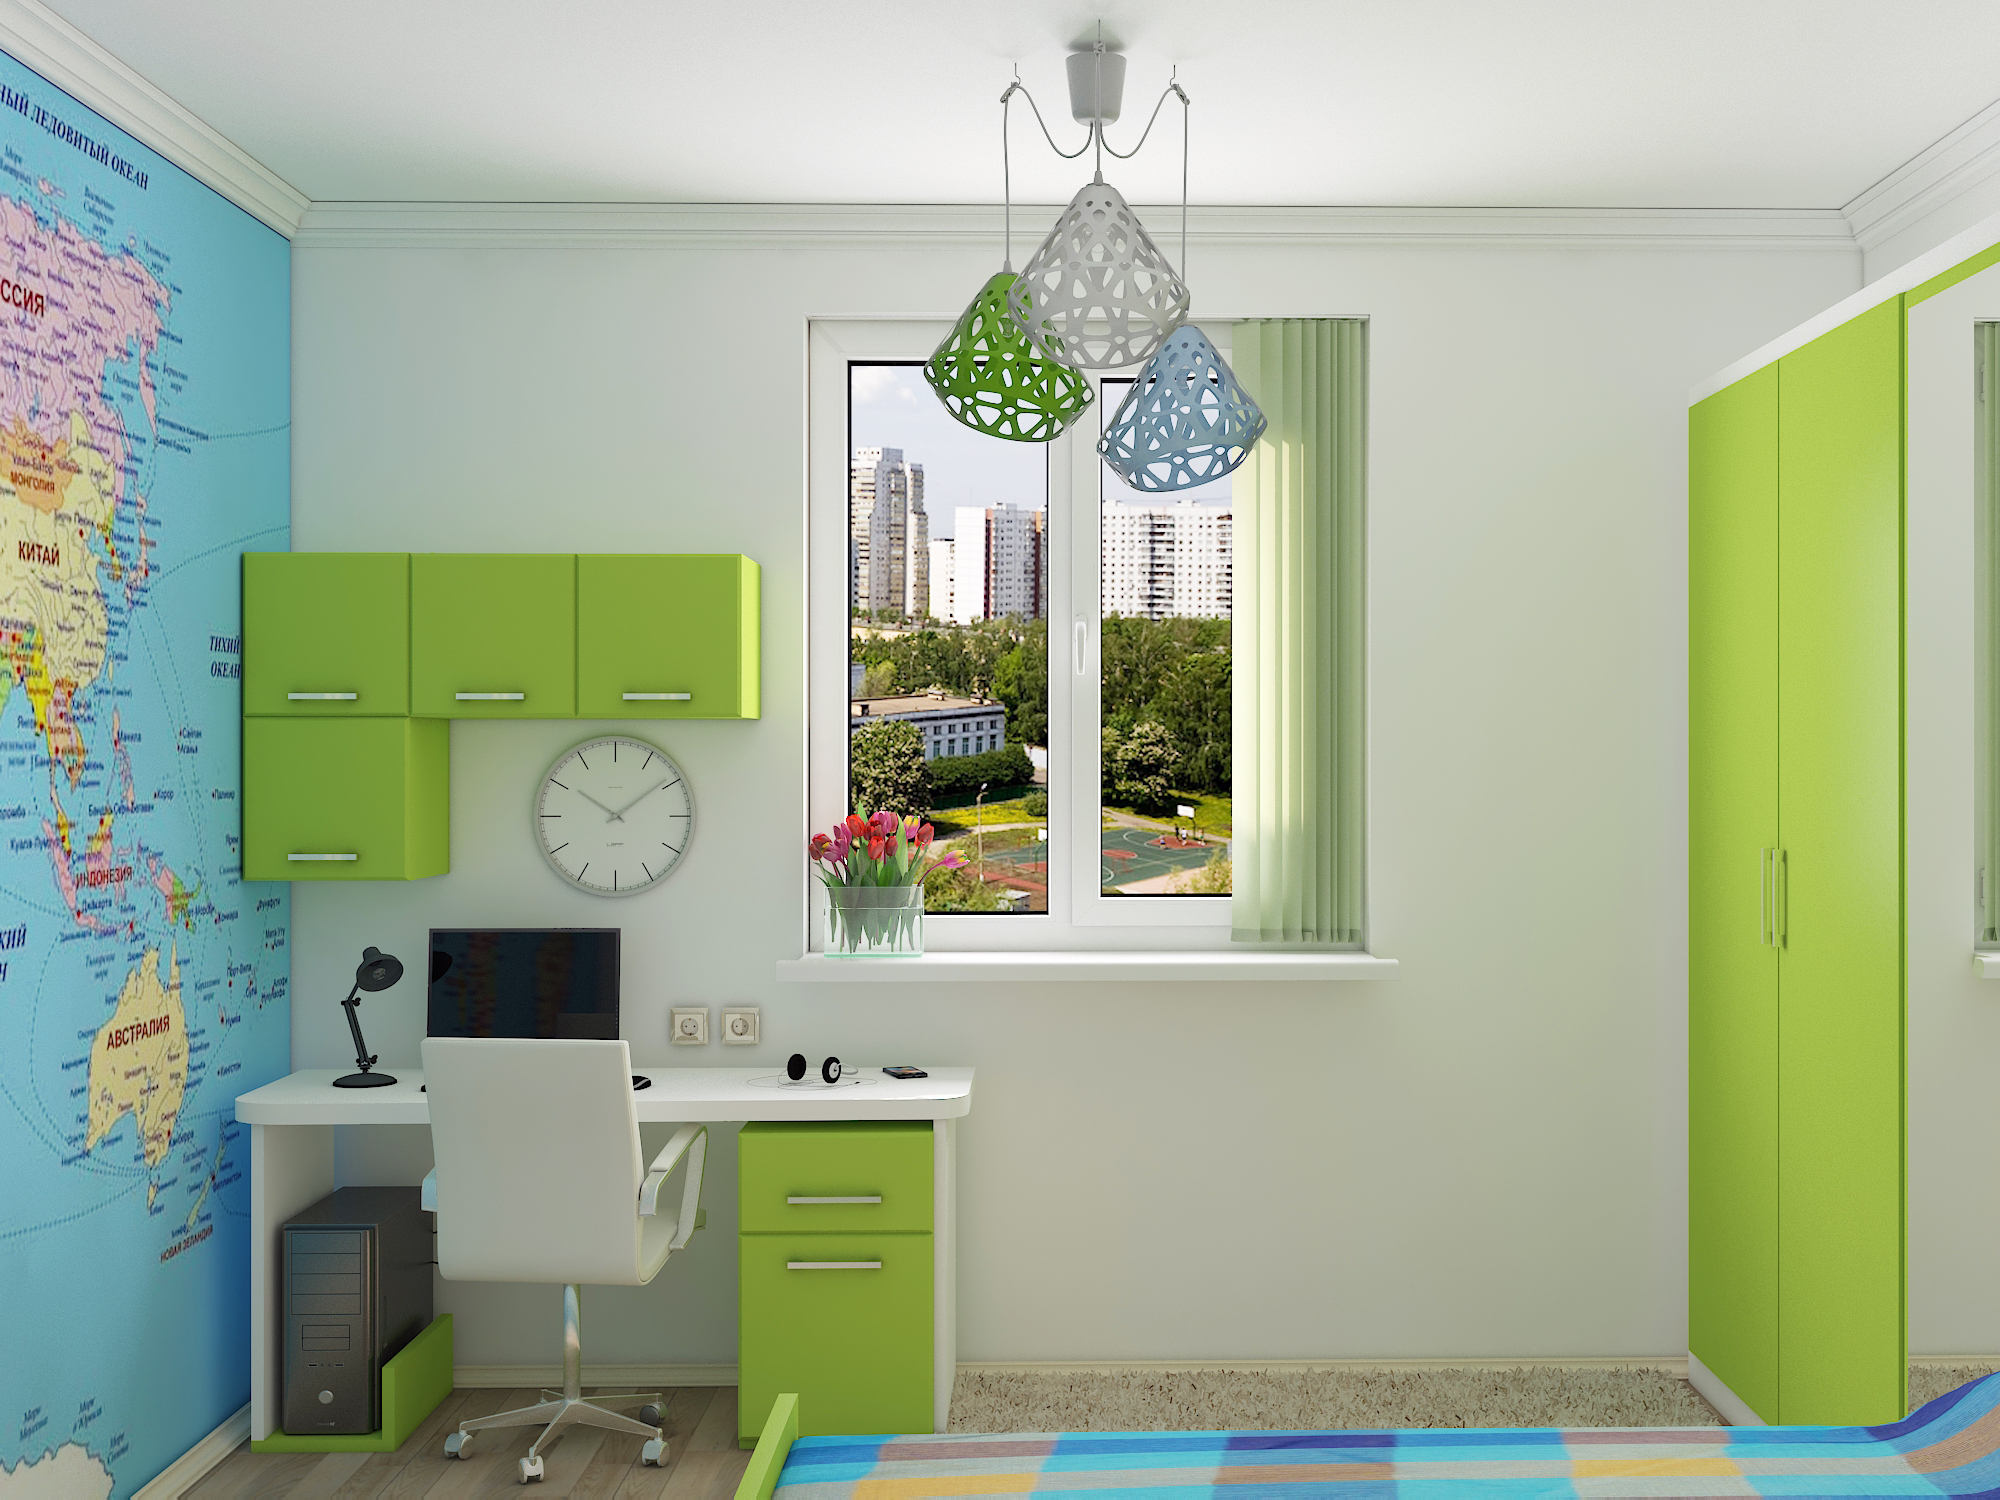 Children's room for a teenager in 3d max vray 3.0 image